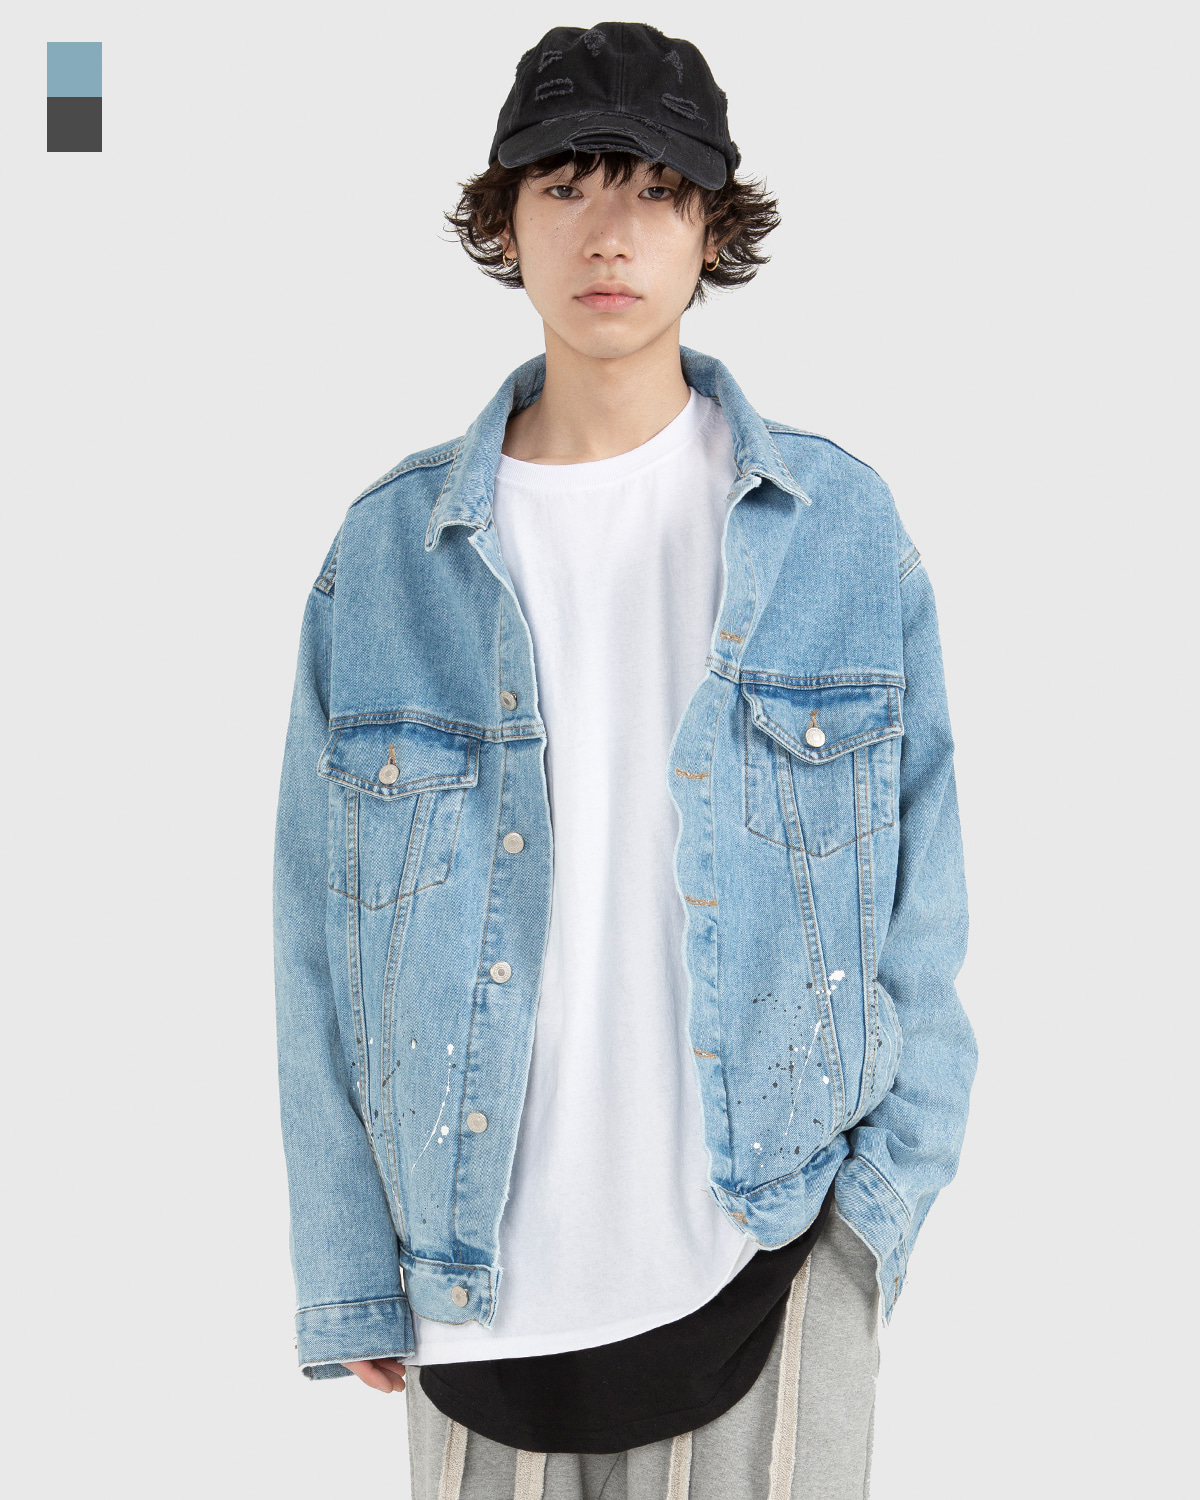 raucohouse-PAINTED DENIM JACKET - RAUCO HOUSE♡韓國男裝外套